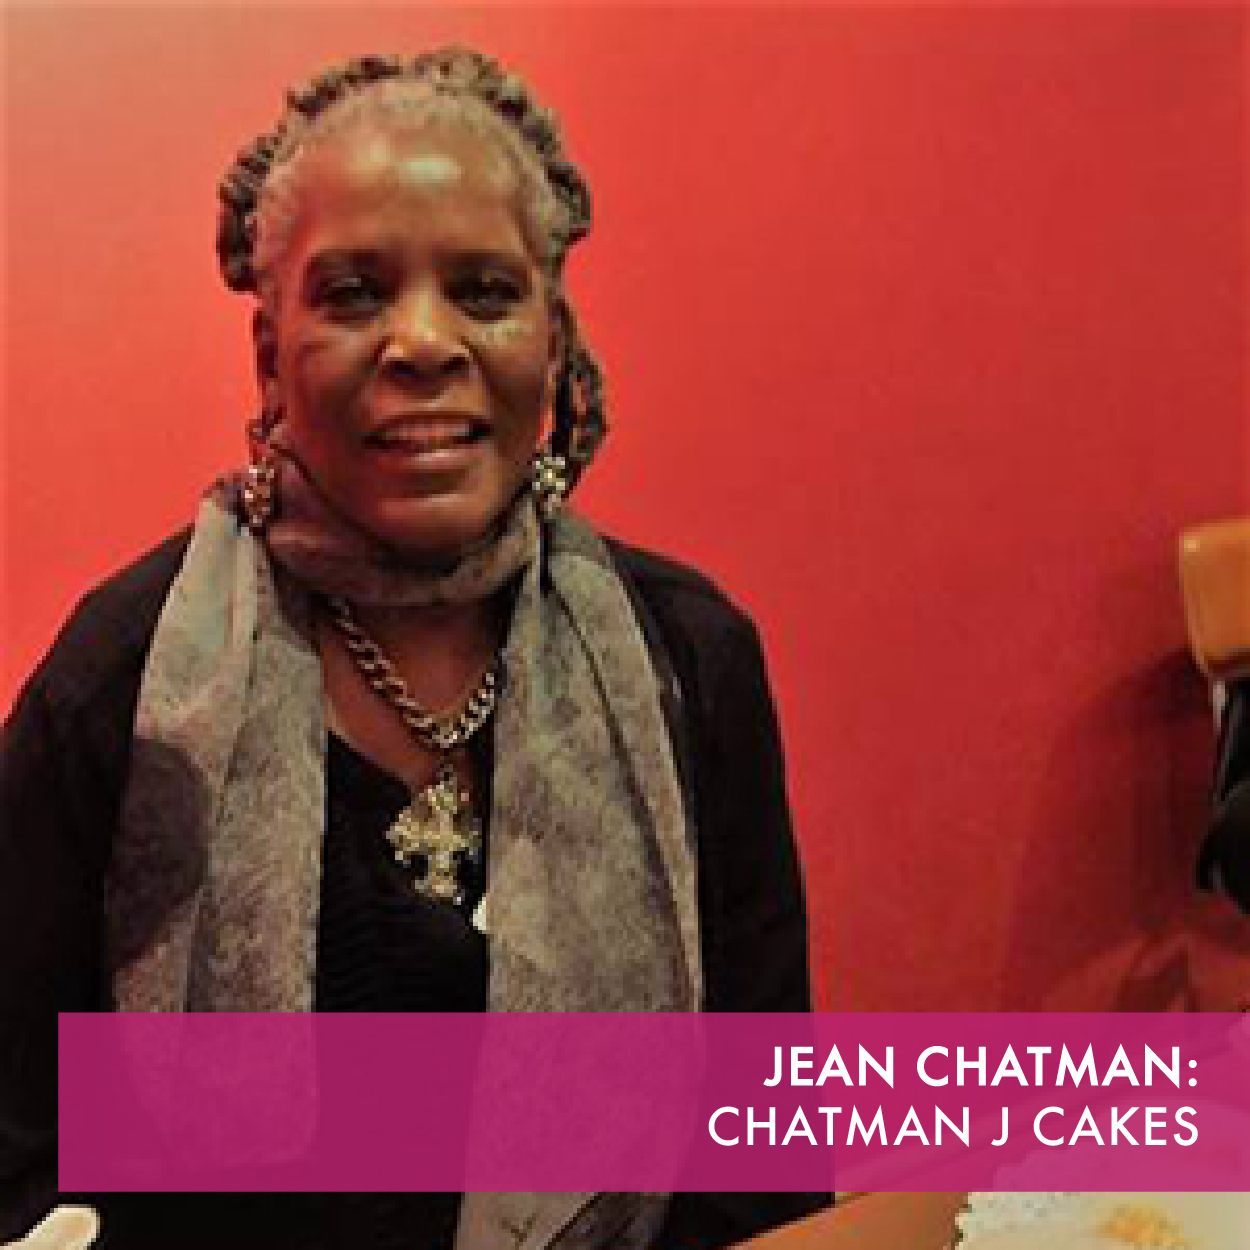 Chatman J Cakes is artisanal bakery in the Bronx, New York that specializes in a limited collection of hand-crafted, award-winning cakes and pies with a Southern influence.